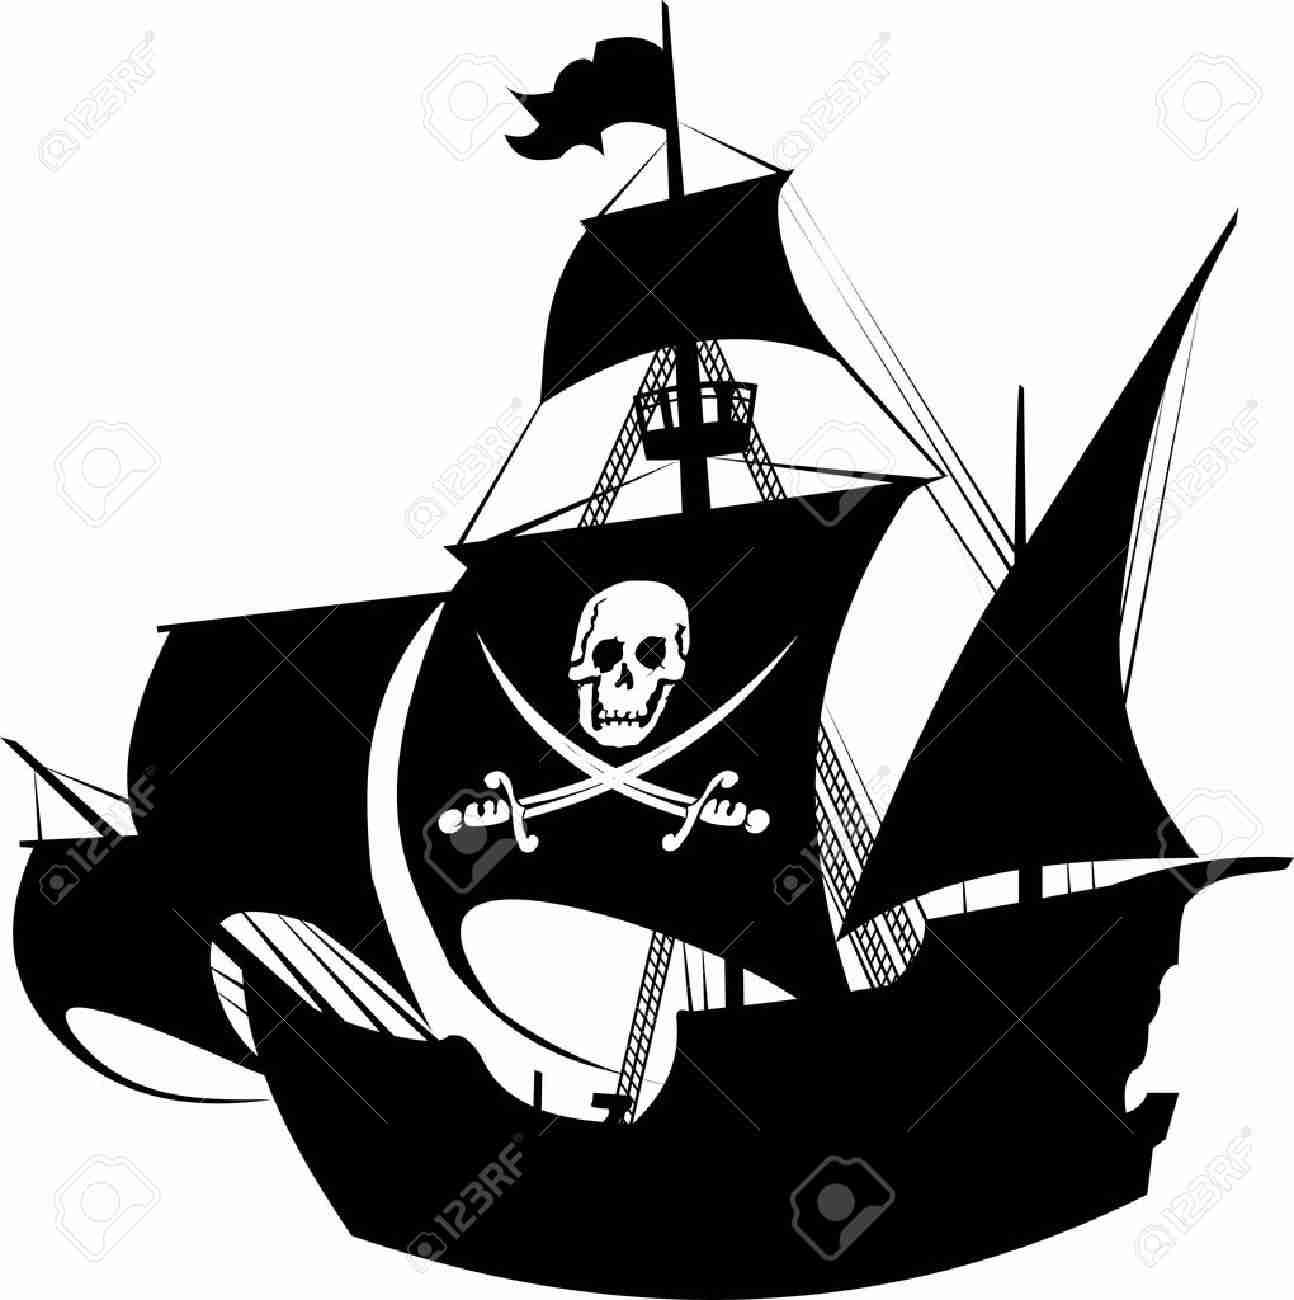 1294x1300 Pirate Ship Drawings Silhouette Clip Art Google Search Simple